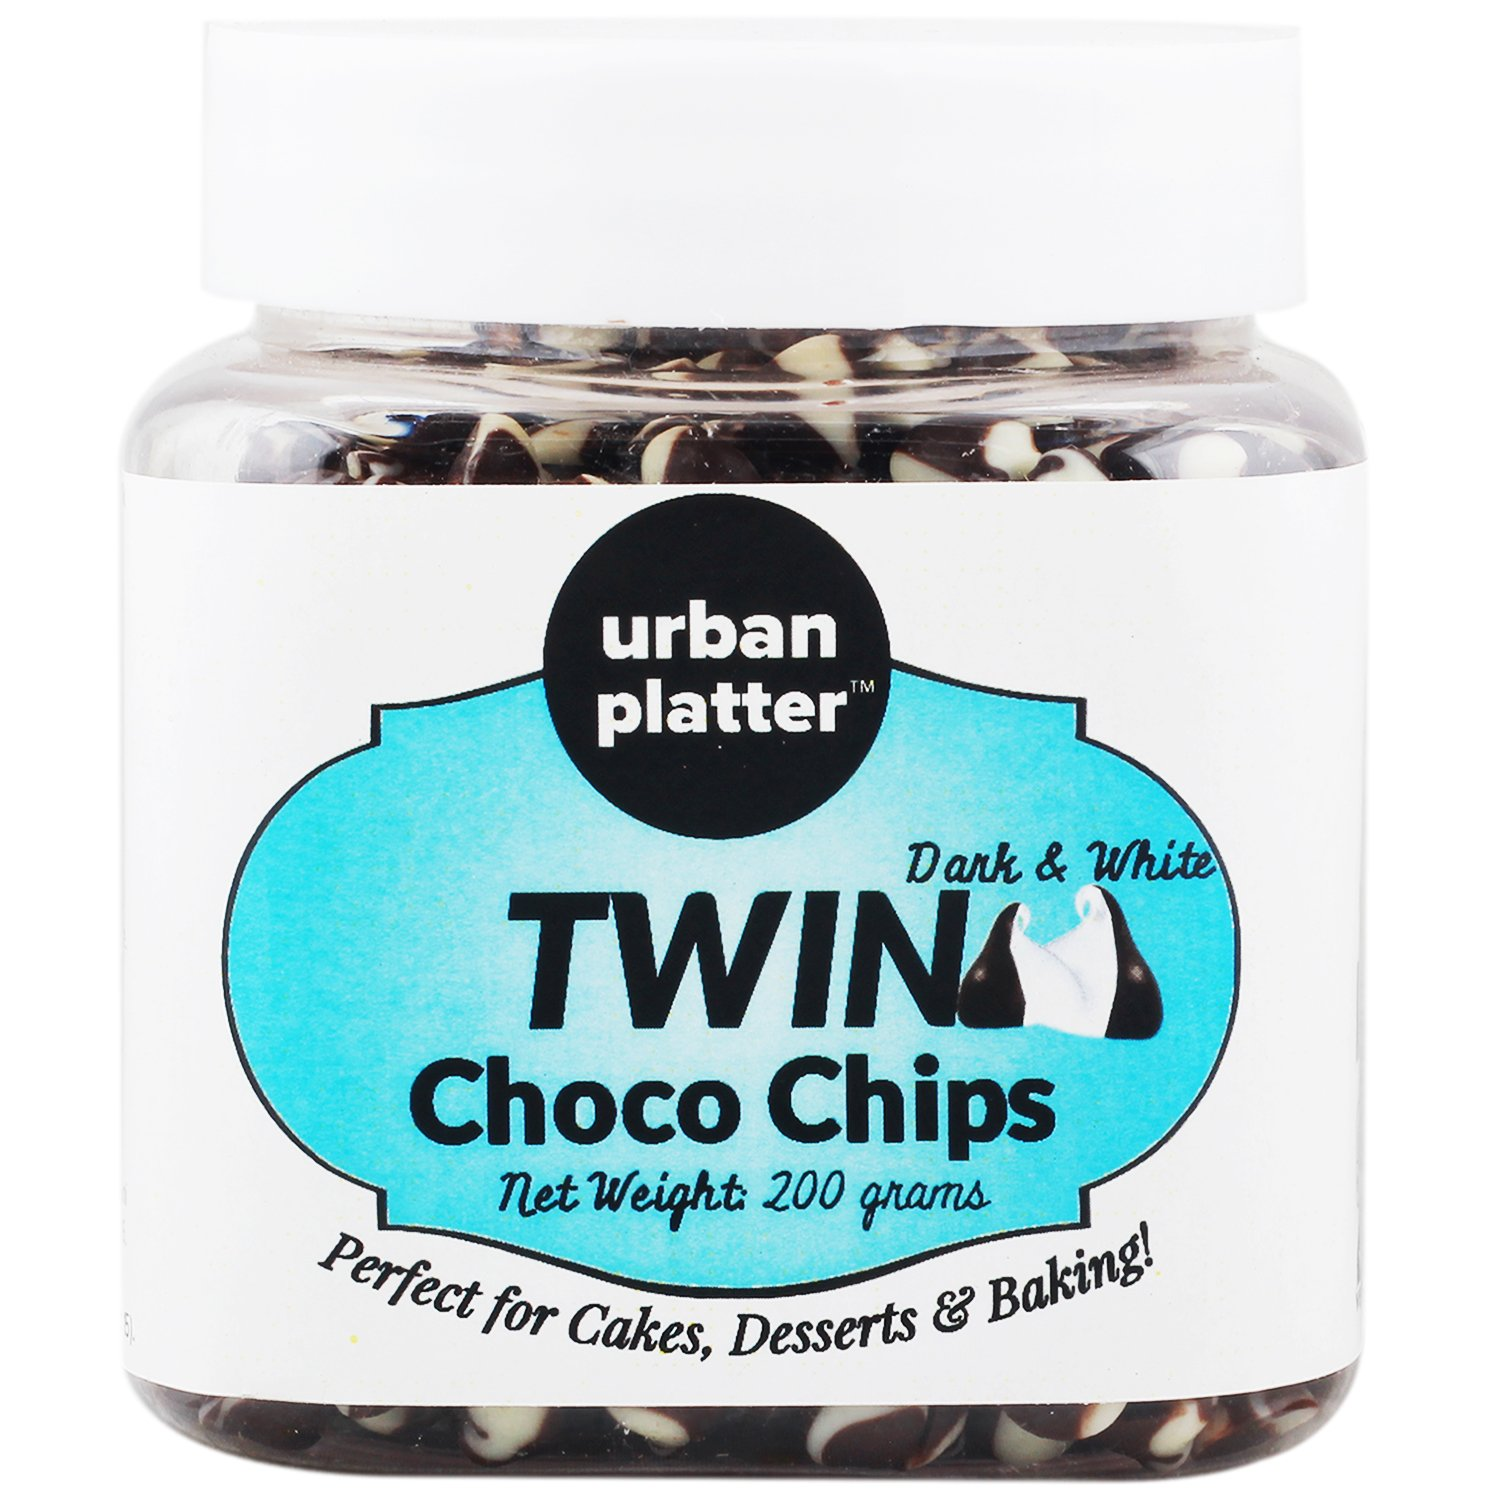 Urban Platter 1 Dark & White Twin Choco Chips, 200G by Urban Platter